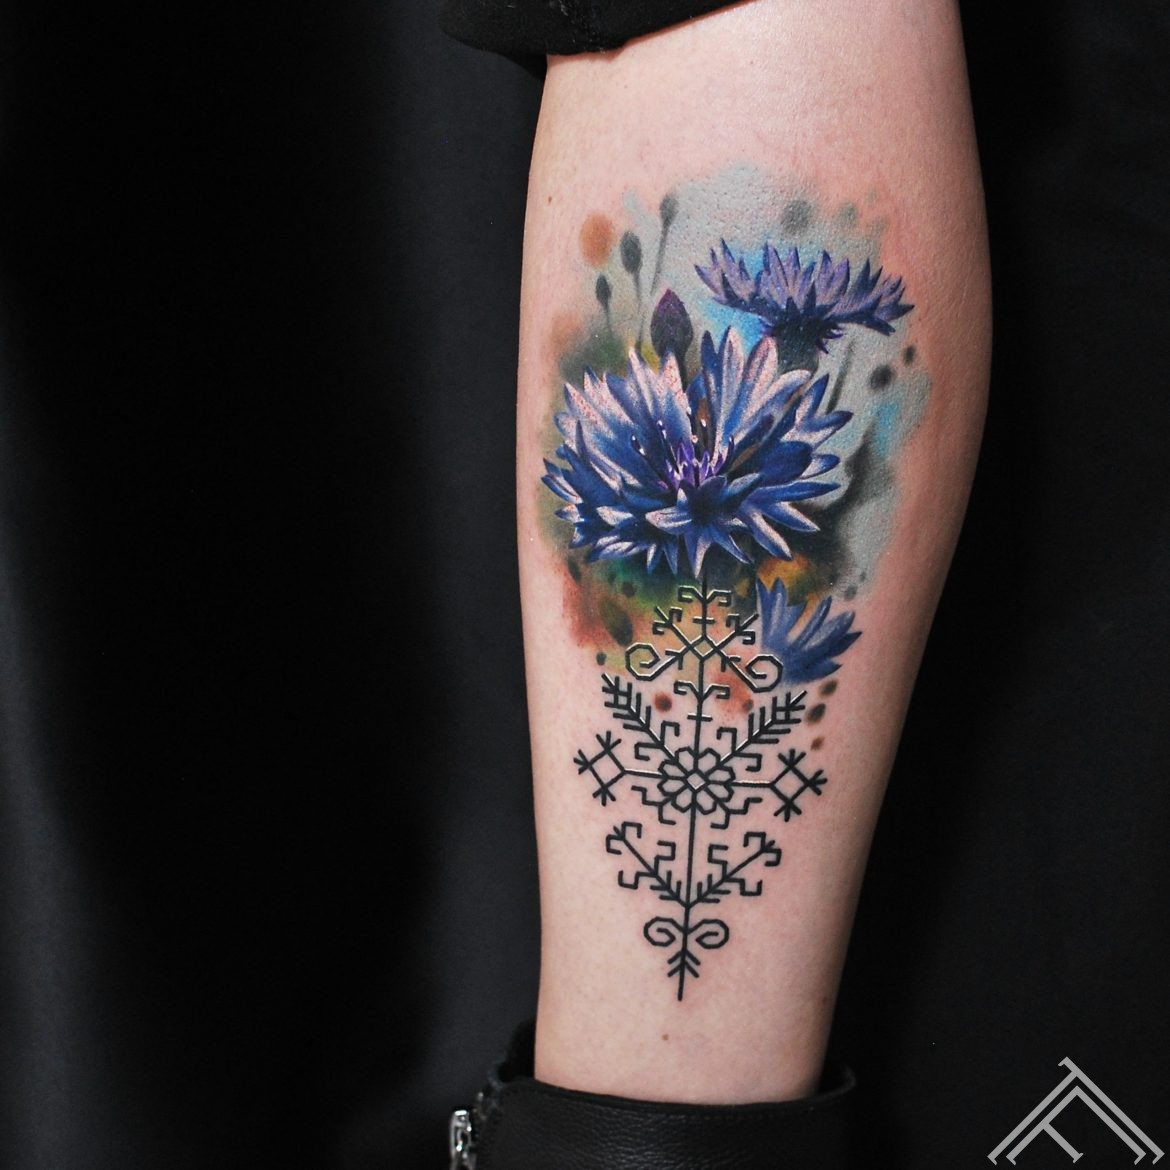 cornflower-flower-nature-martinssilins-tattoo-tattoofrequency-riga-art